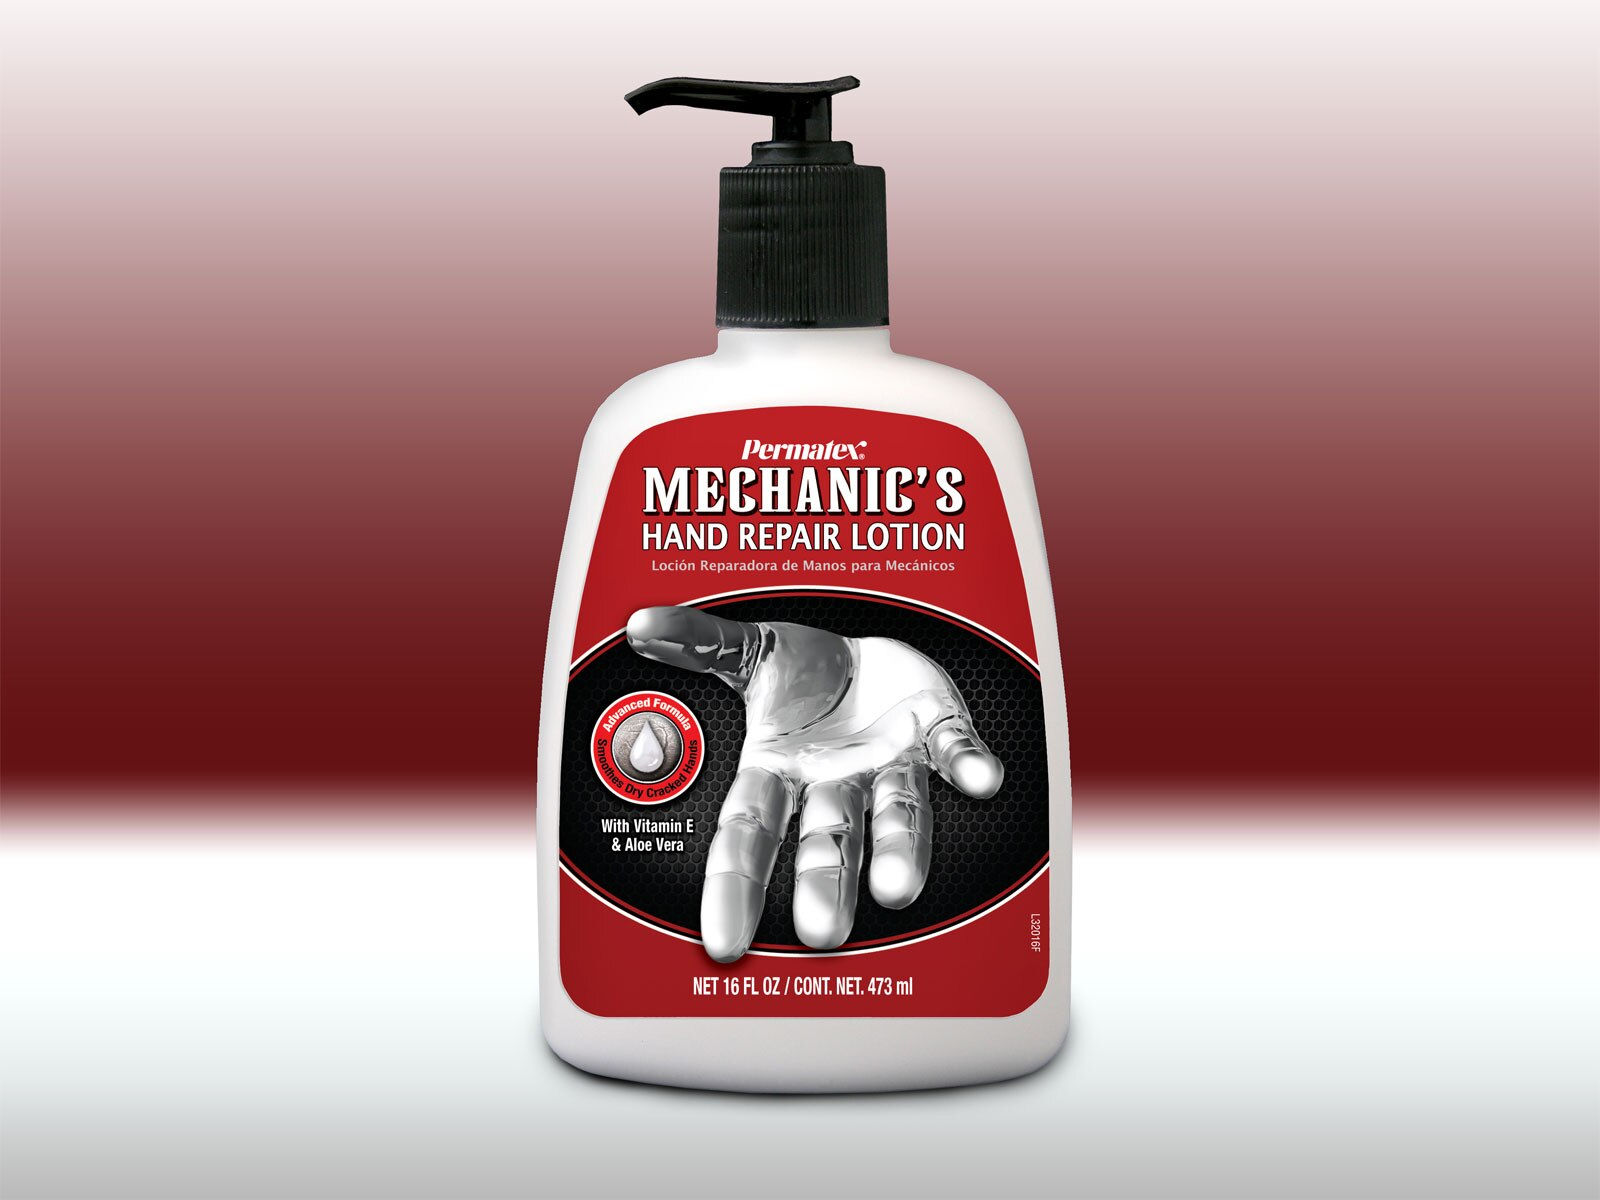 Permatex Mechanic's Hand Repair Lotion features an advanced formula especially made for automotive techs and DIYers.